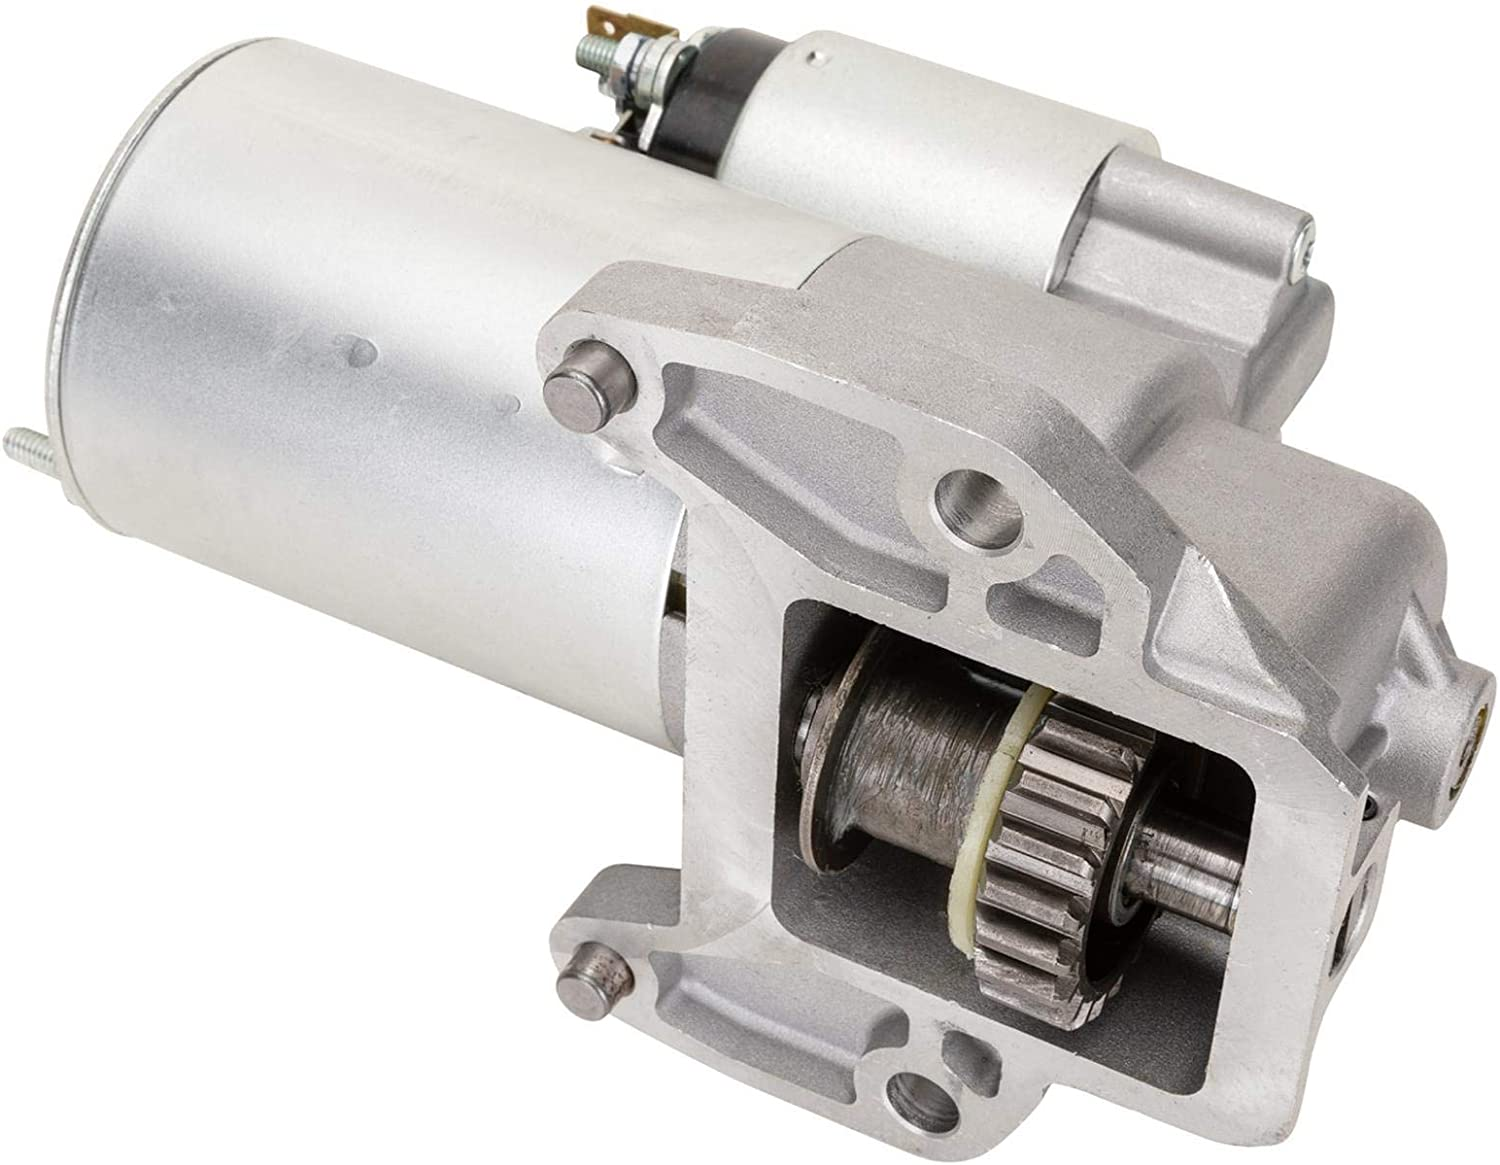 IINAWO 1pc Starter Motor Max 61% OFF Compatible Topics on TV 2.5L 002.5L with 3.0L